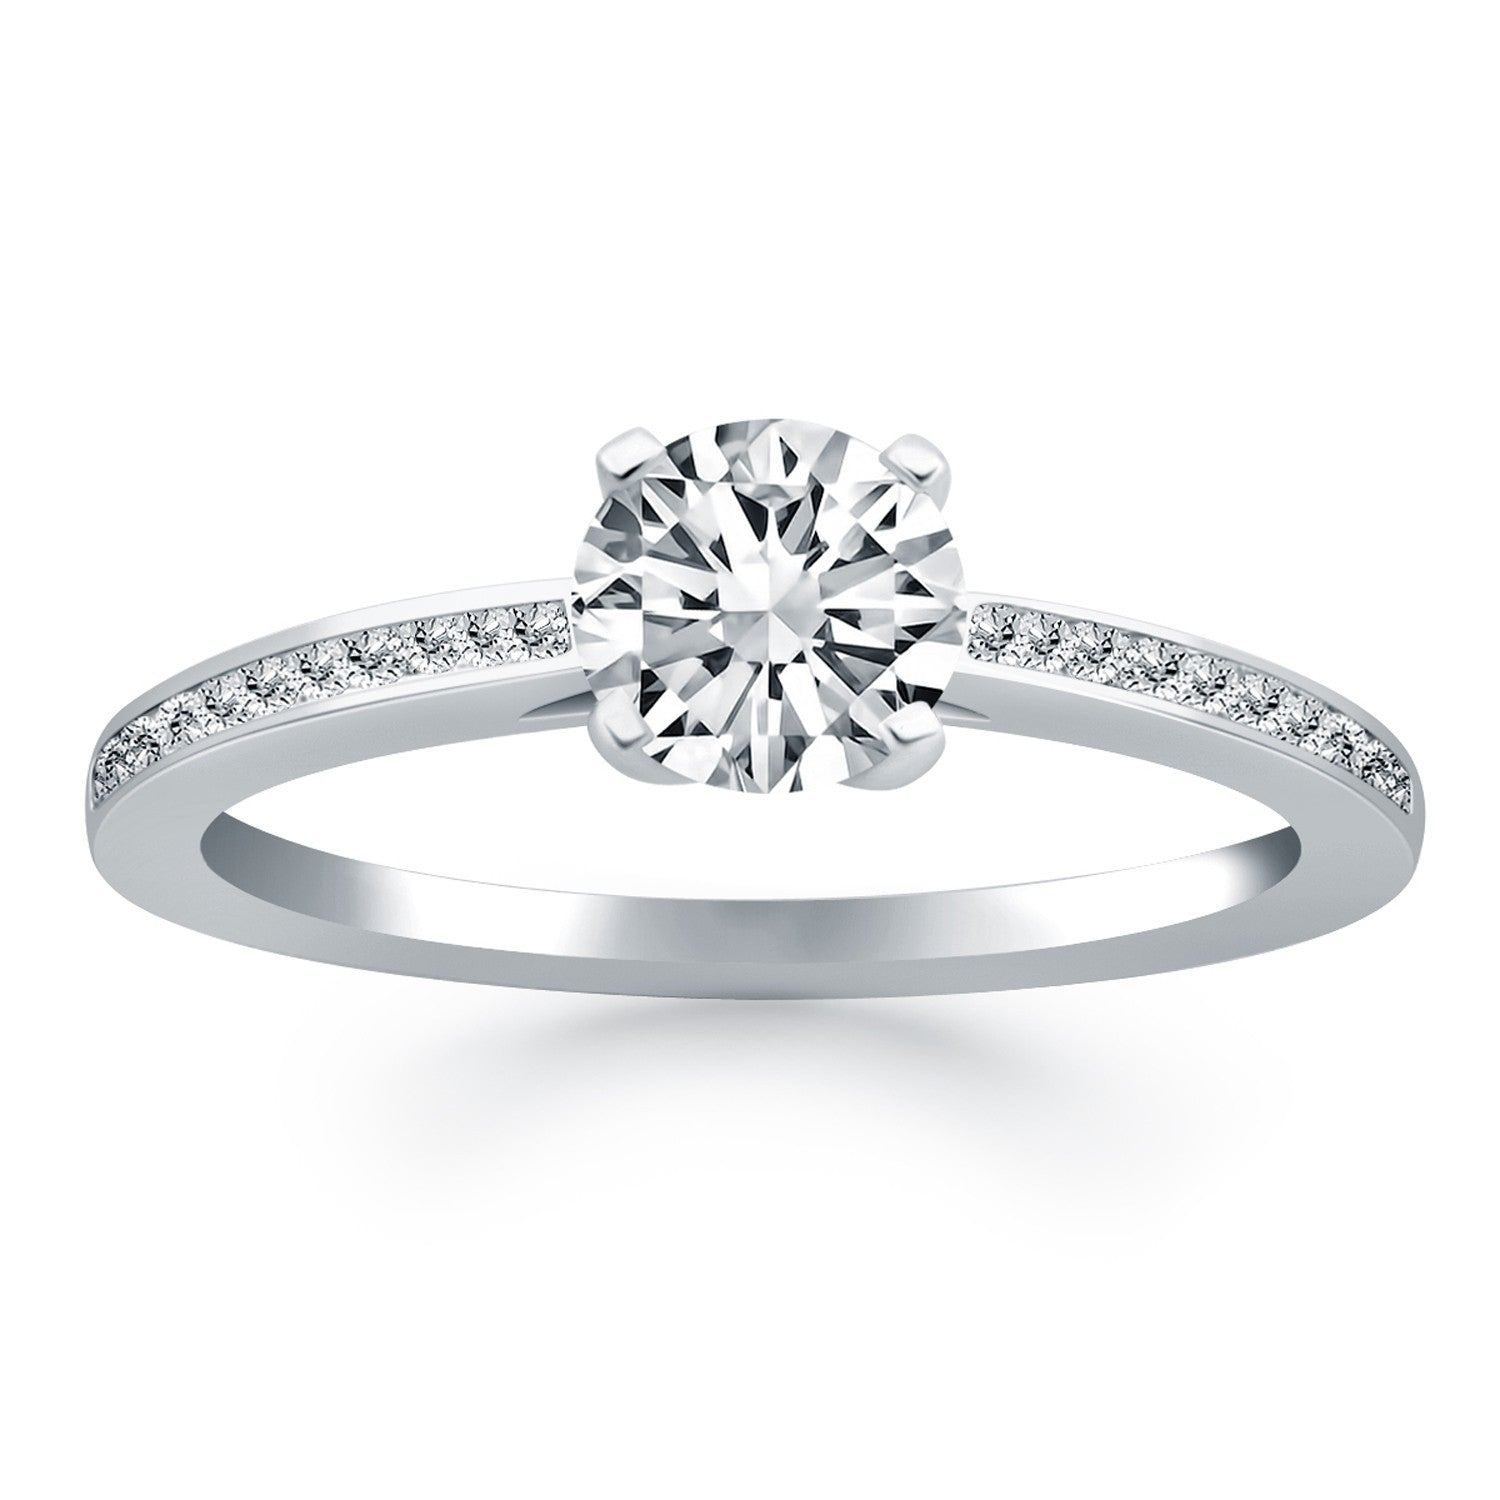 rings you against will if can ring topic sit engagement tell helpful cathedral flush how wedding band